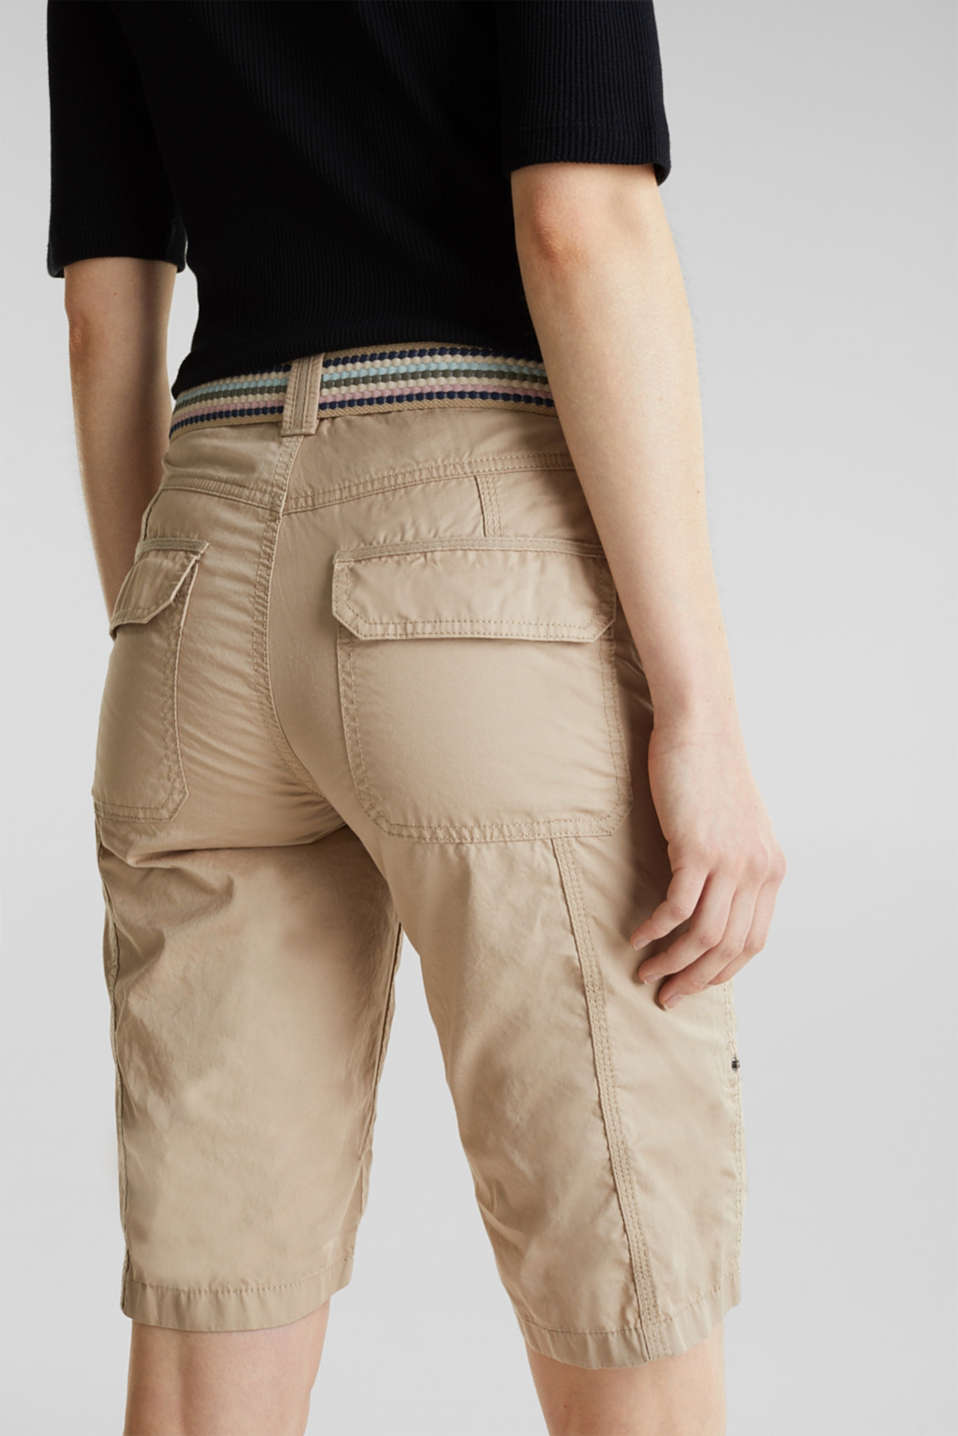 PLAY cotton shorts, BEIGE, detail image number 5